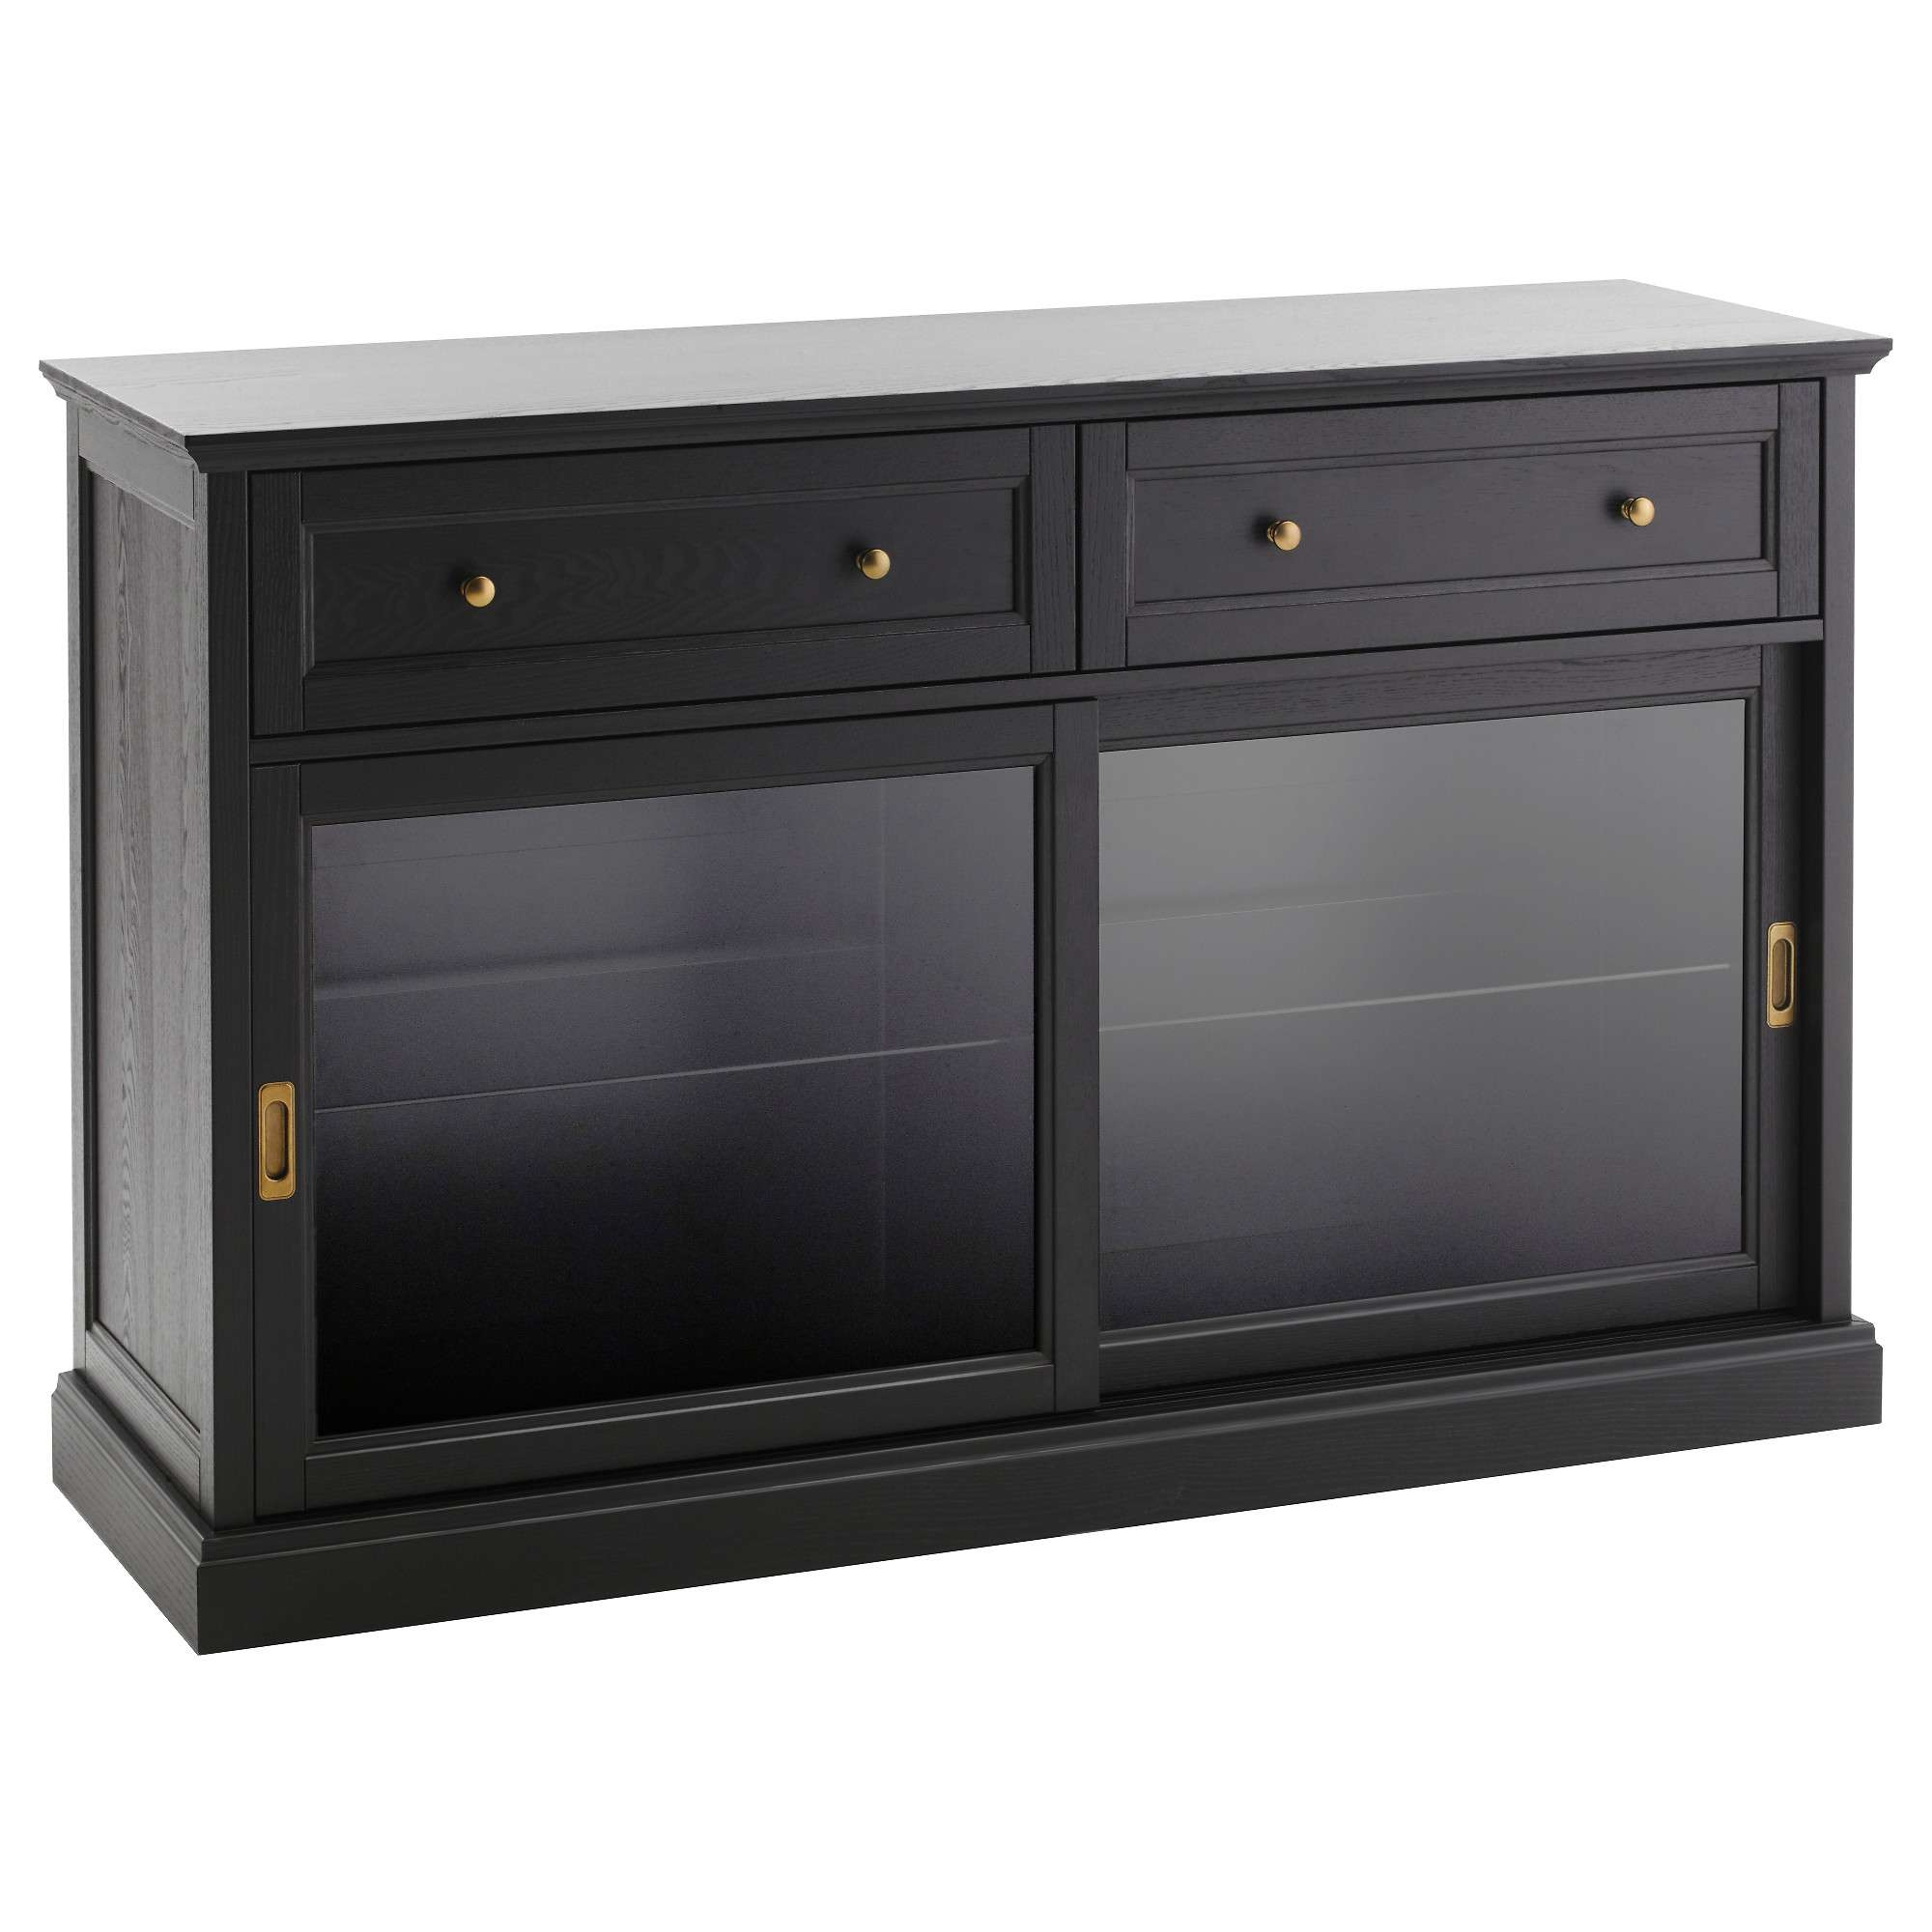 Buffet Tables & Sideboards – Ikea In Metal Sideboards (View 9 of 20)